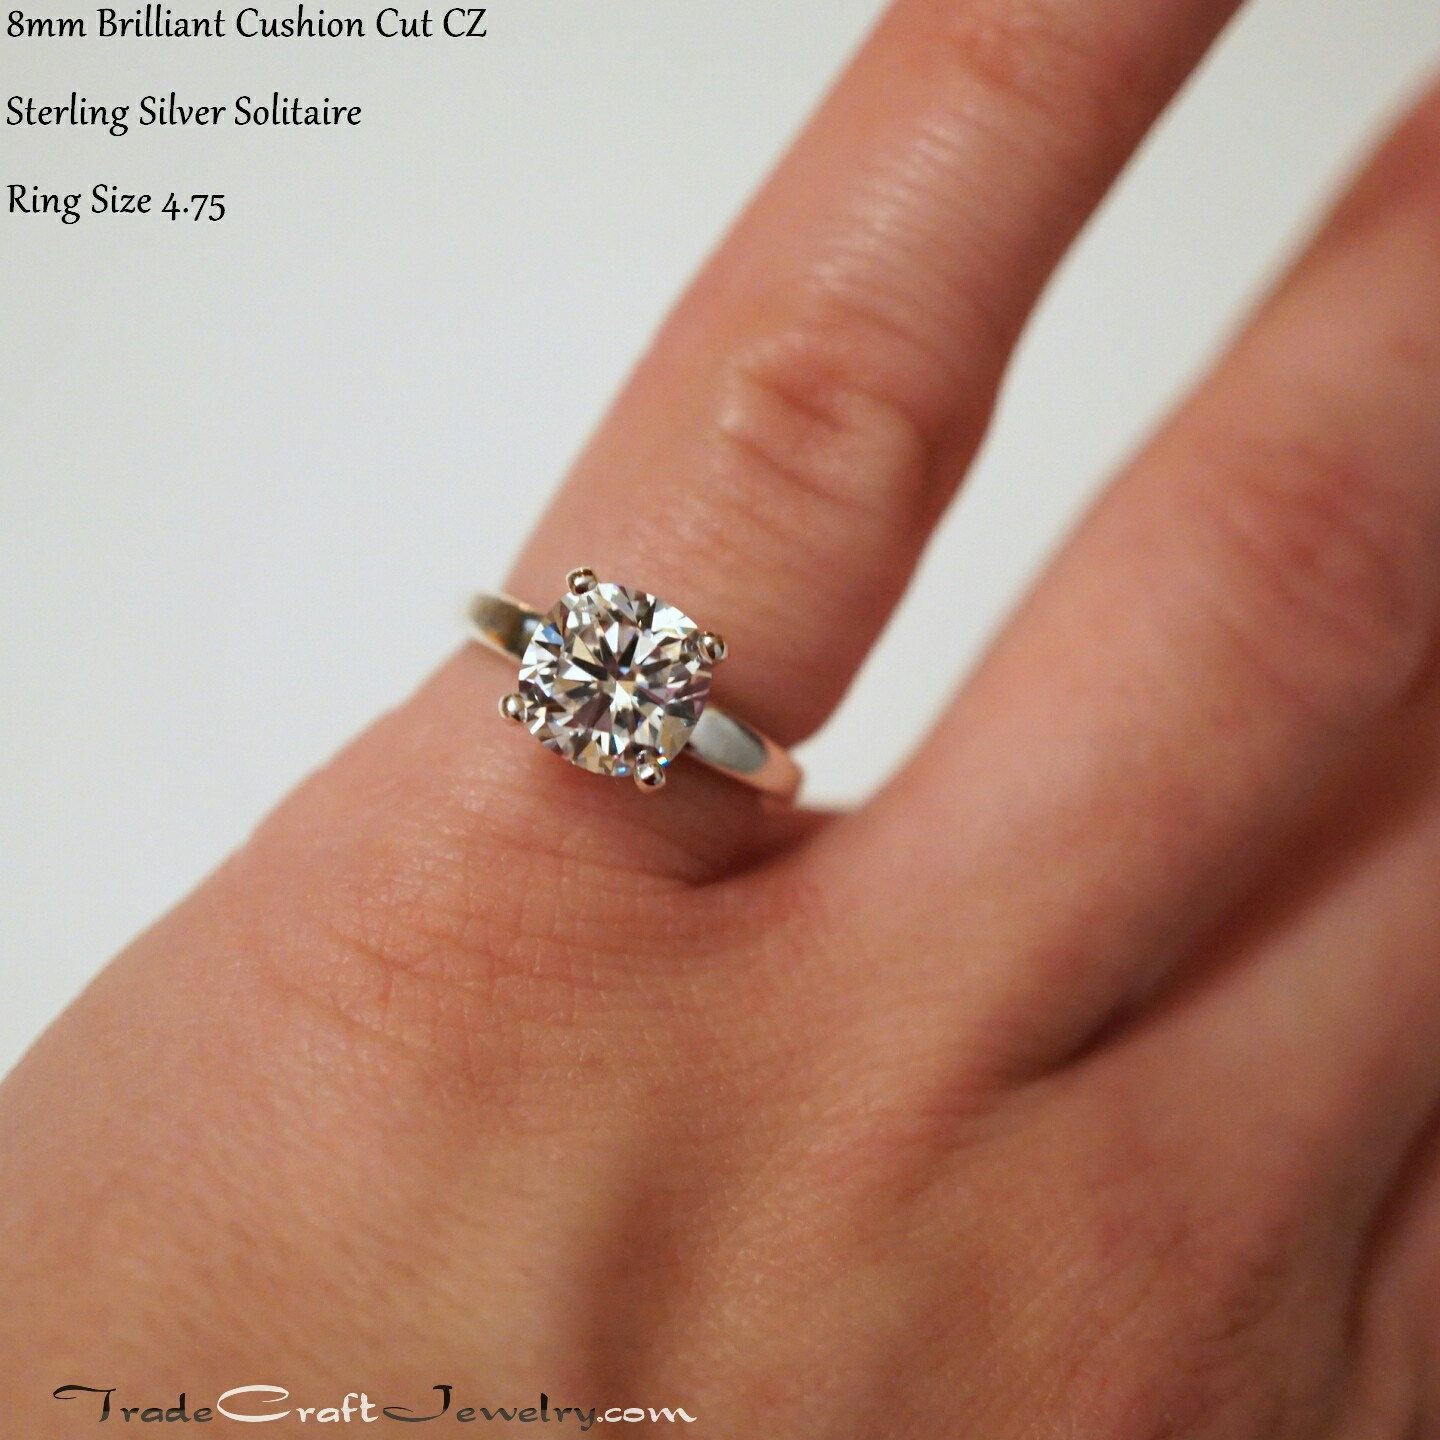 Cushion Cut CZ Engagement Ring Set in a 4 Prong Sterling Silver Solitaire